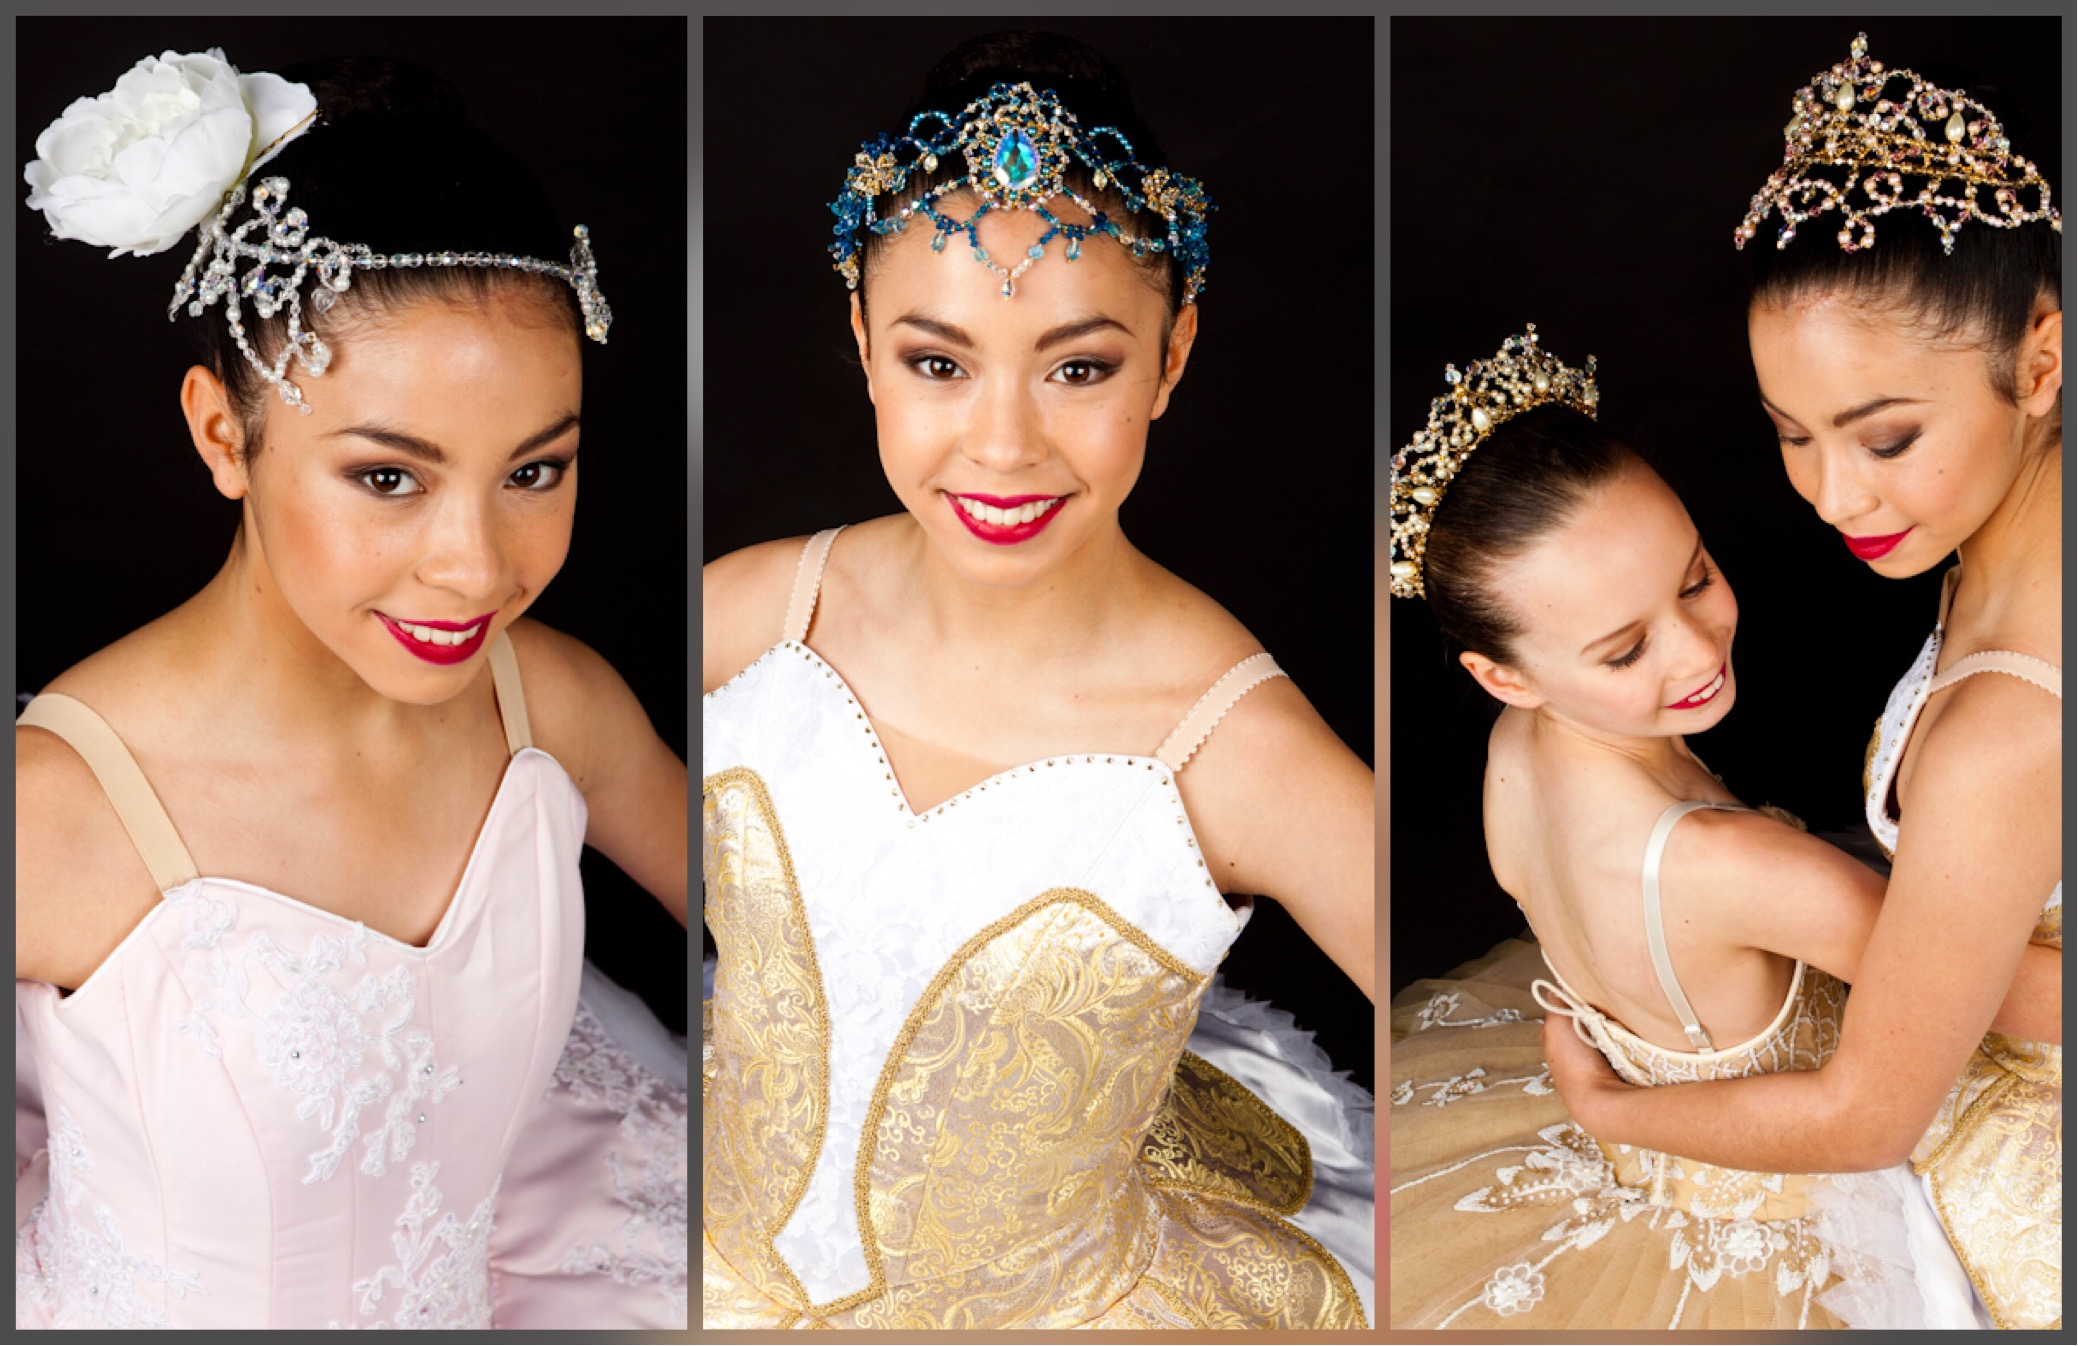 All Tiaras 4 Dance Tiaras and Crowns